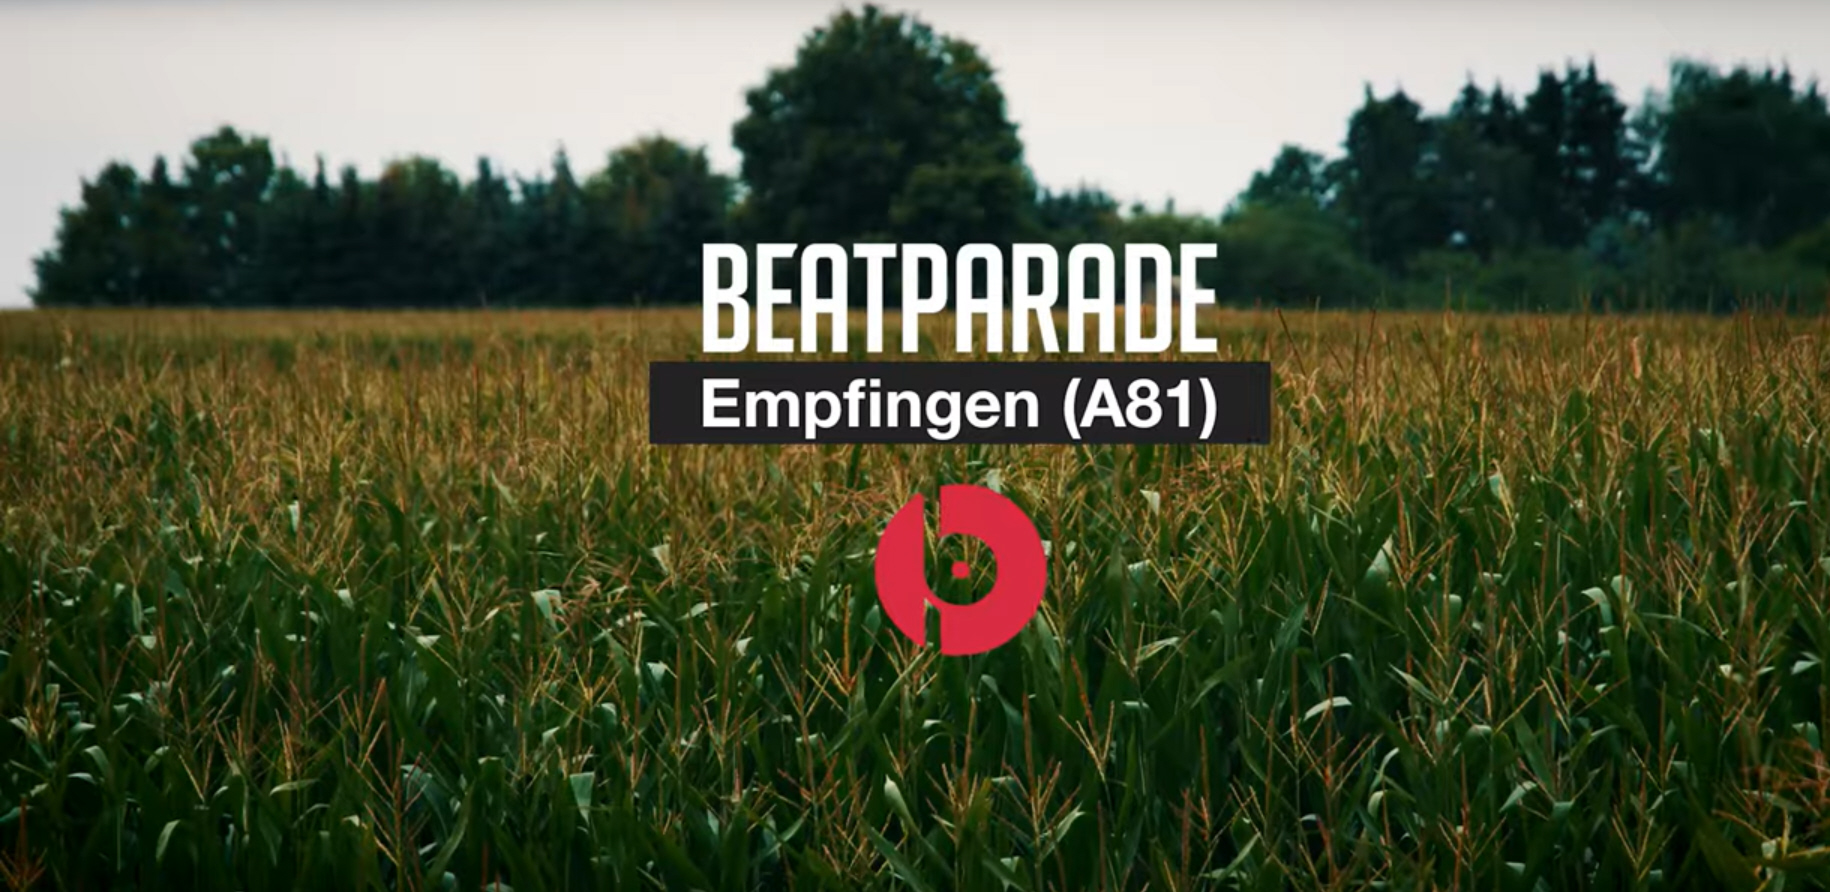 BEATPARADE 2019 - Official Teaser